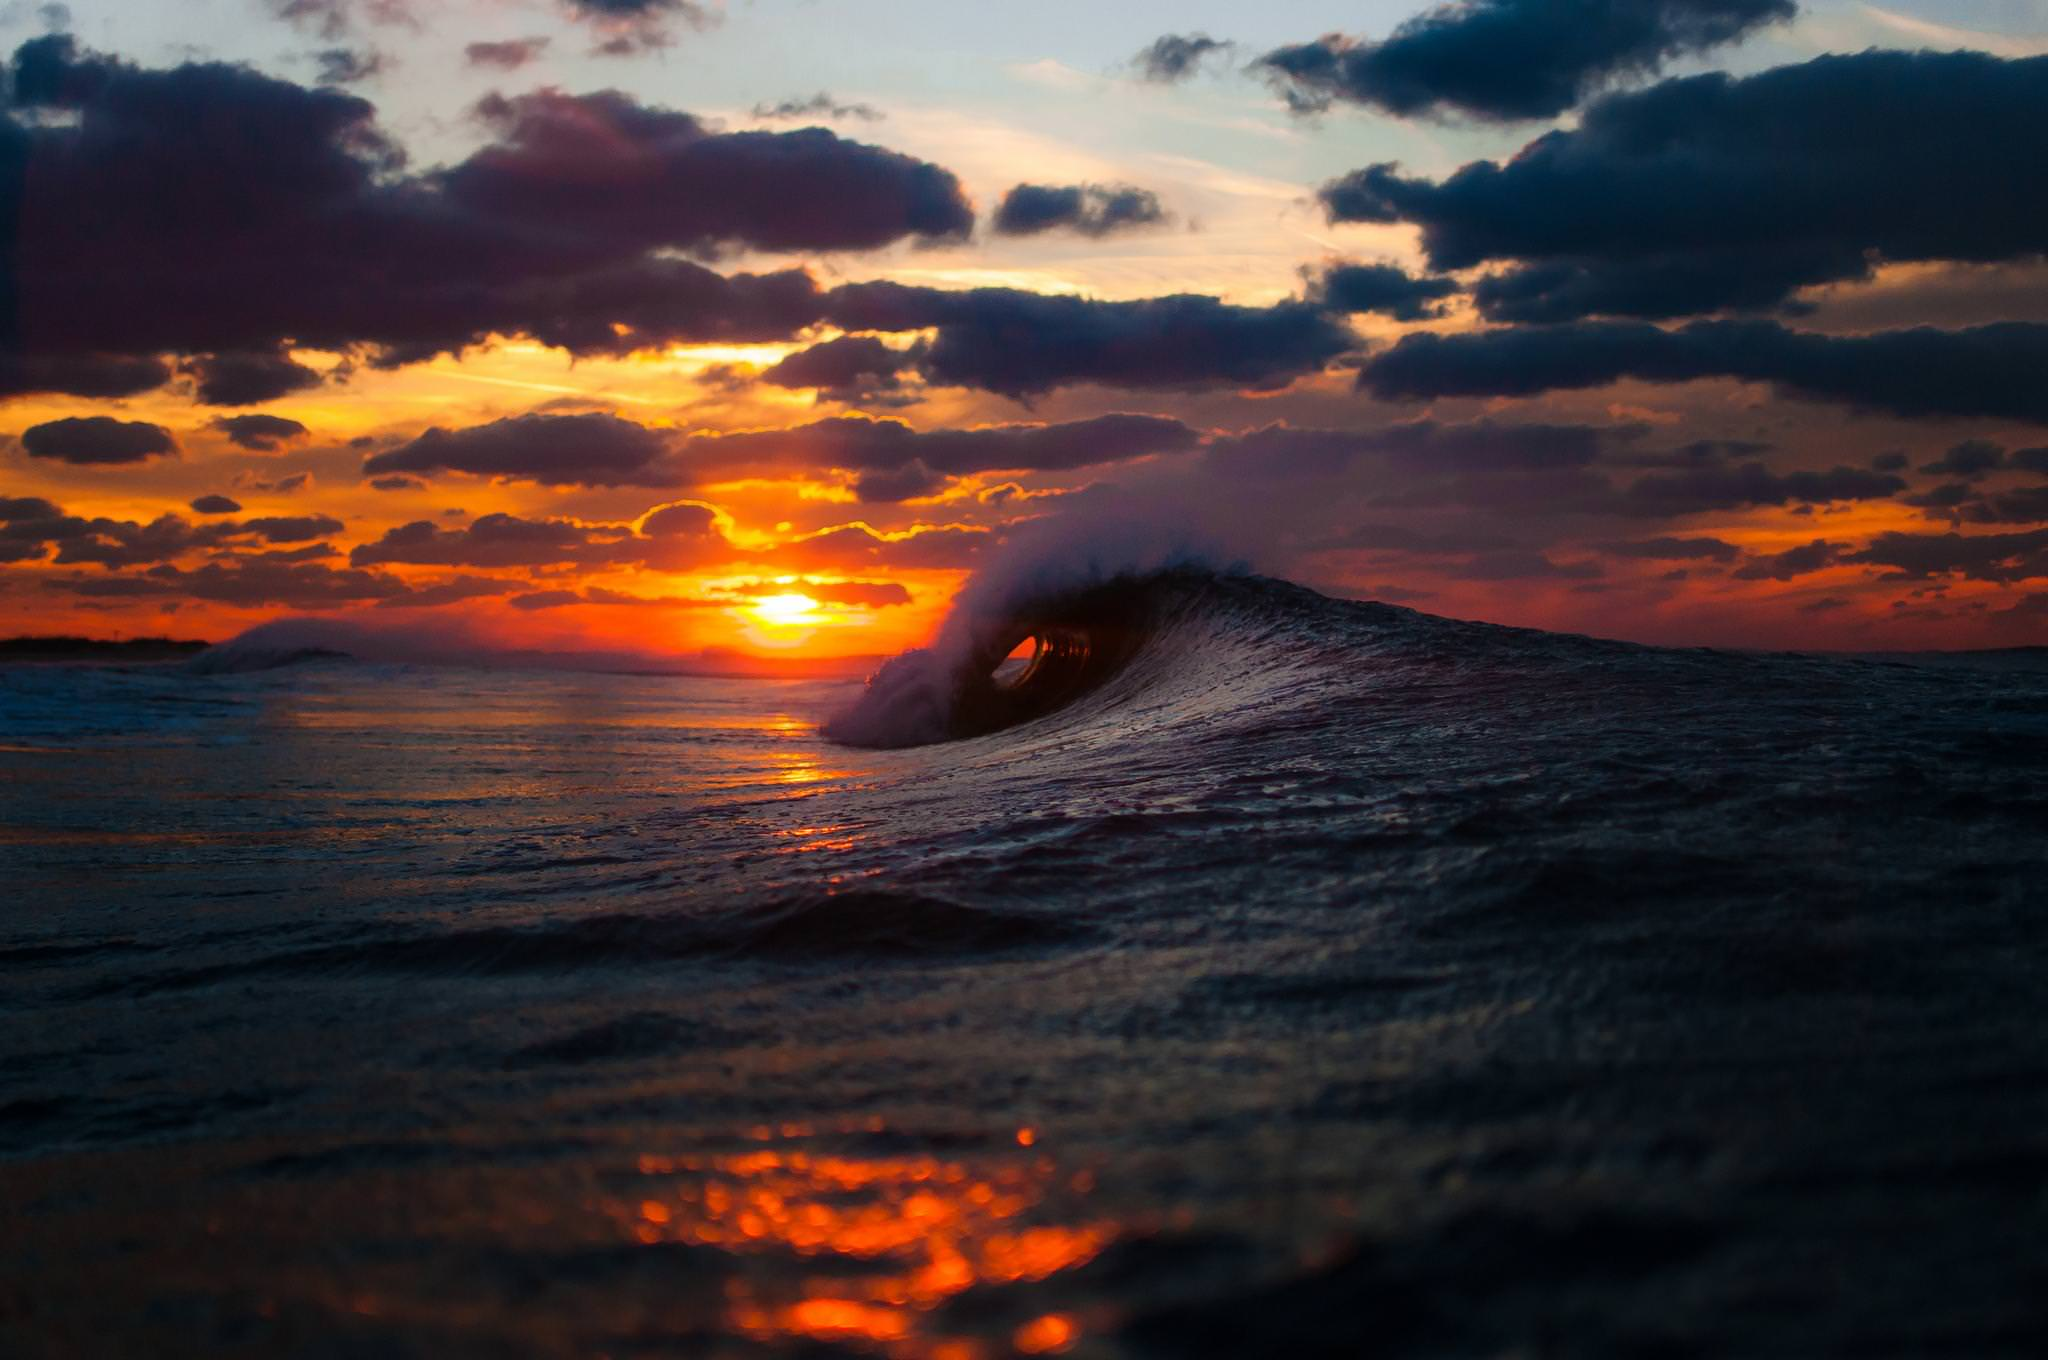 Sunset through the ocean waves